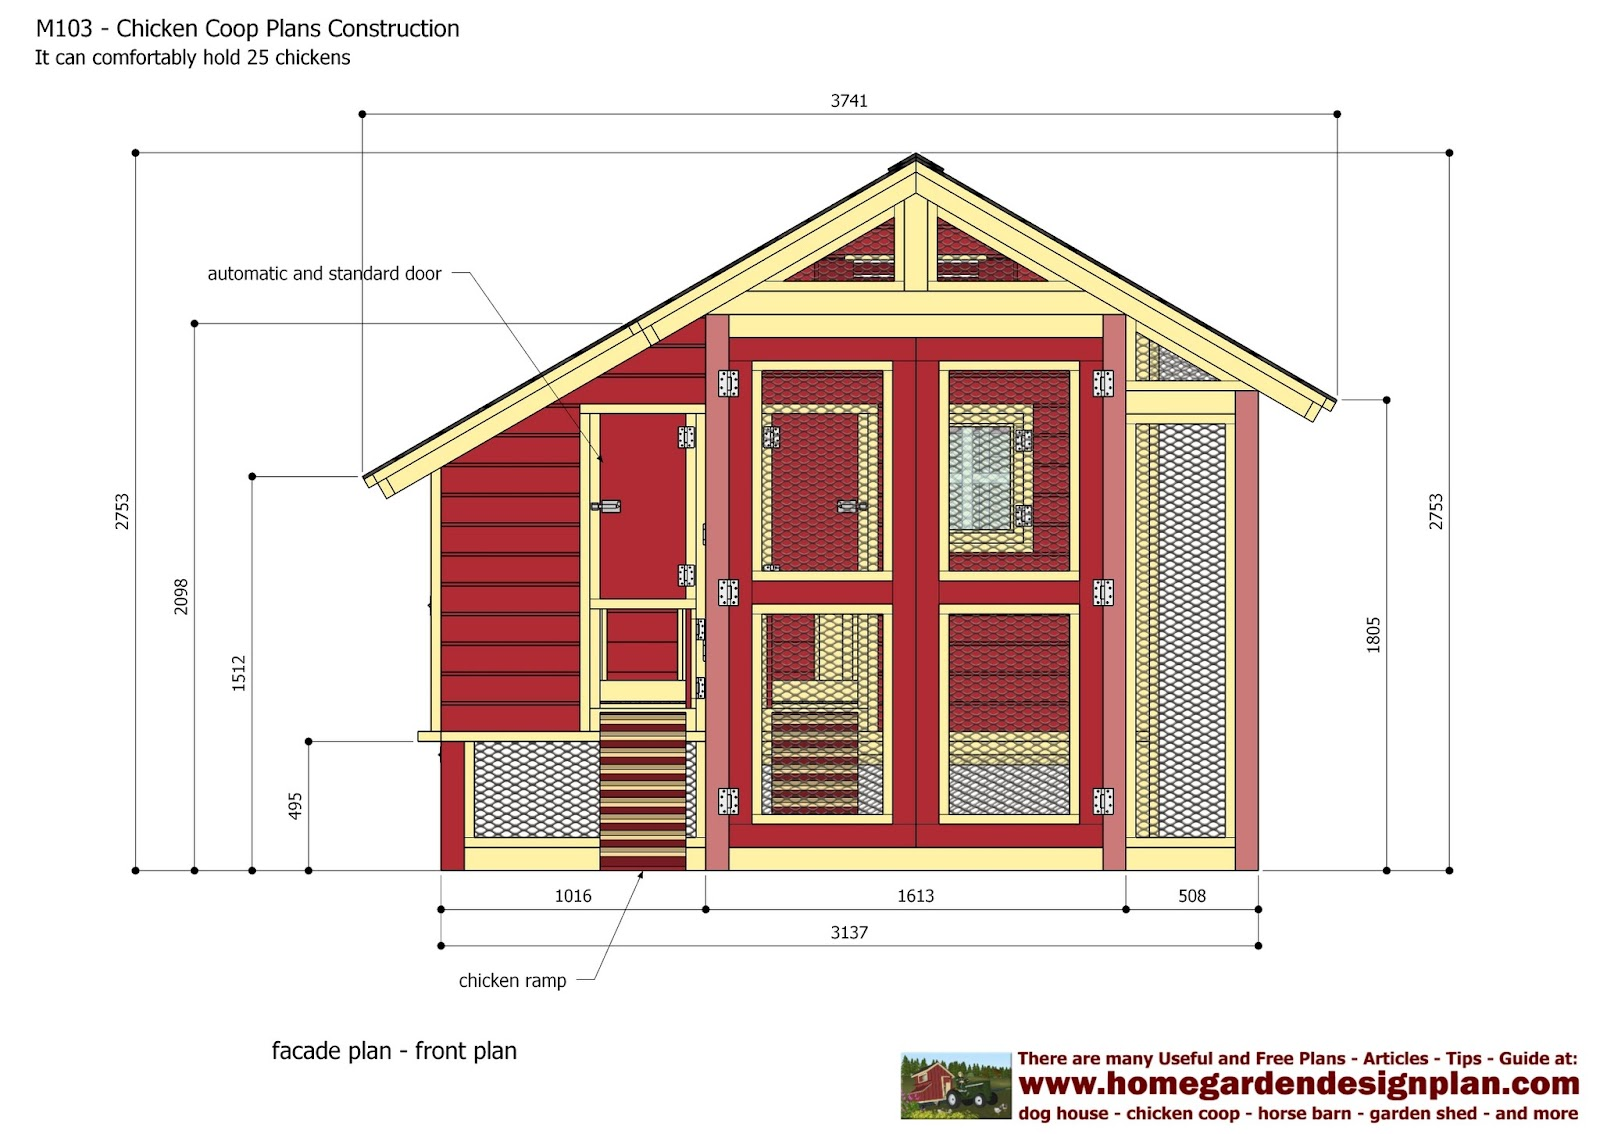 Home garden plans m103 chicken coop plans construction for Coop house plans